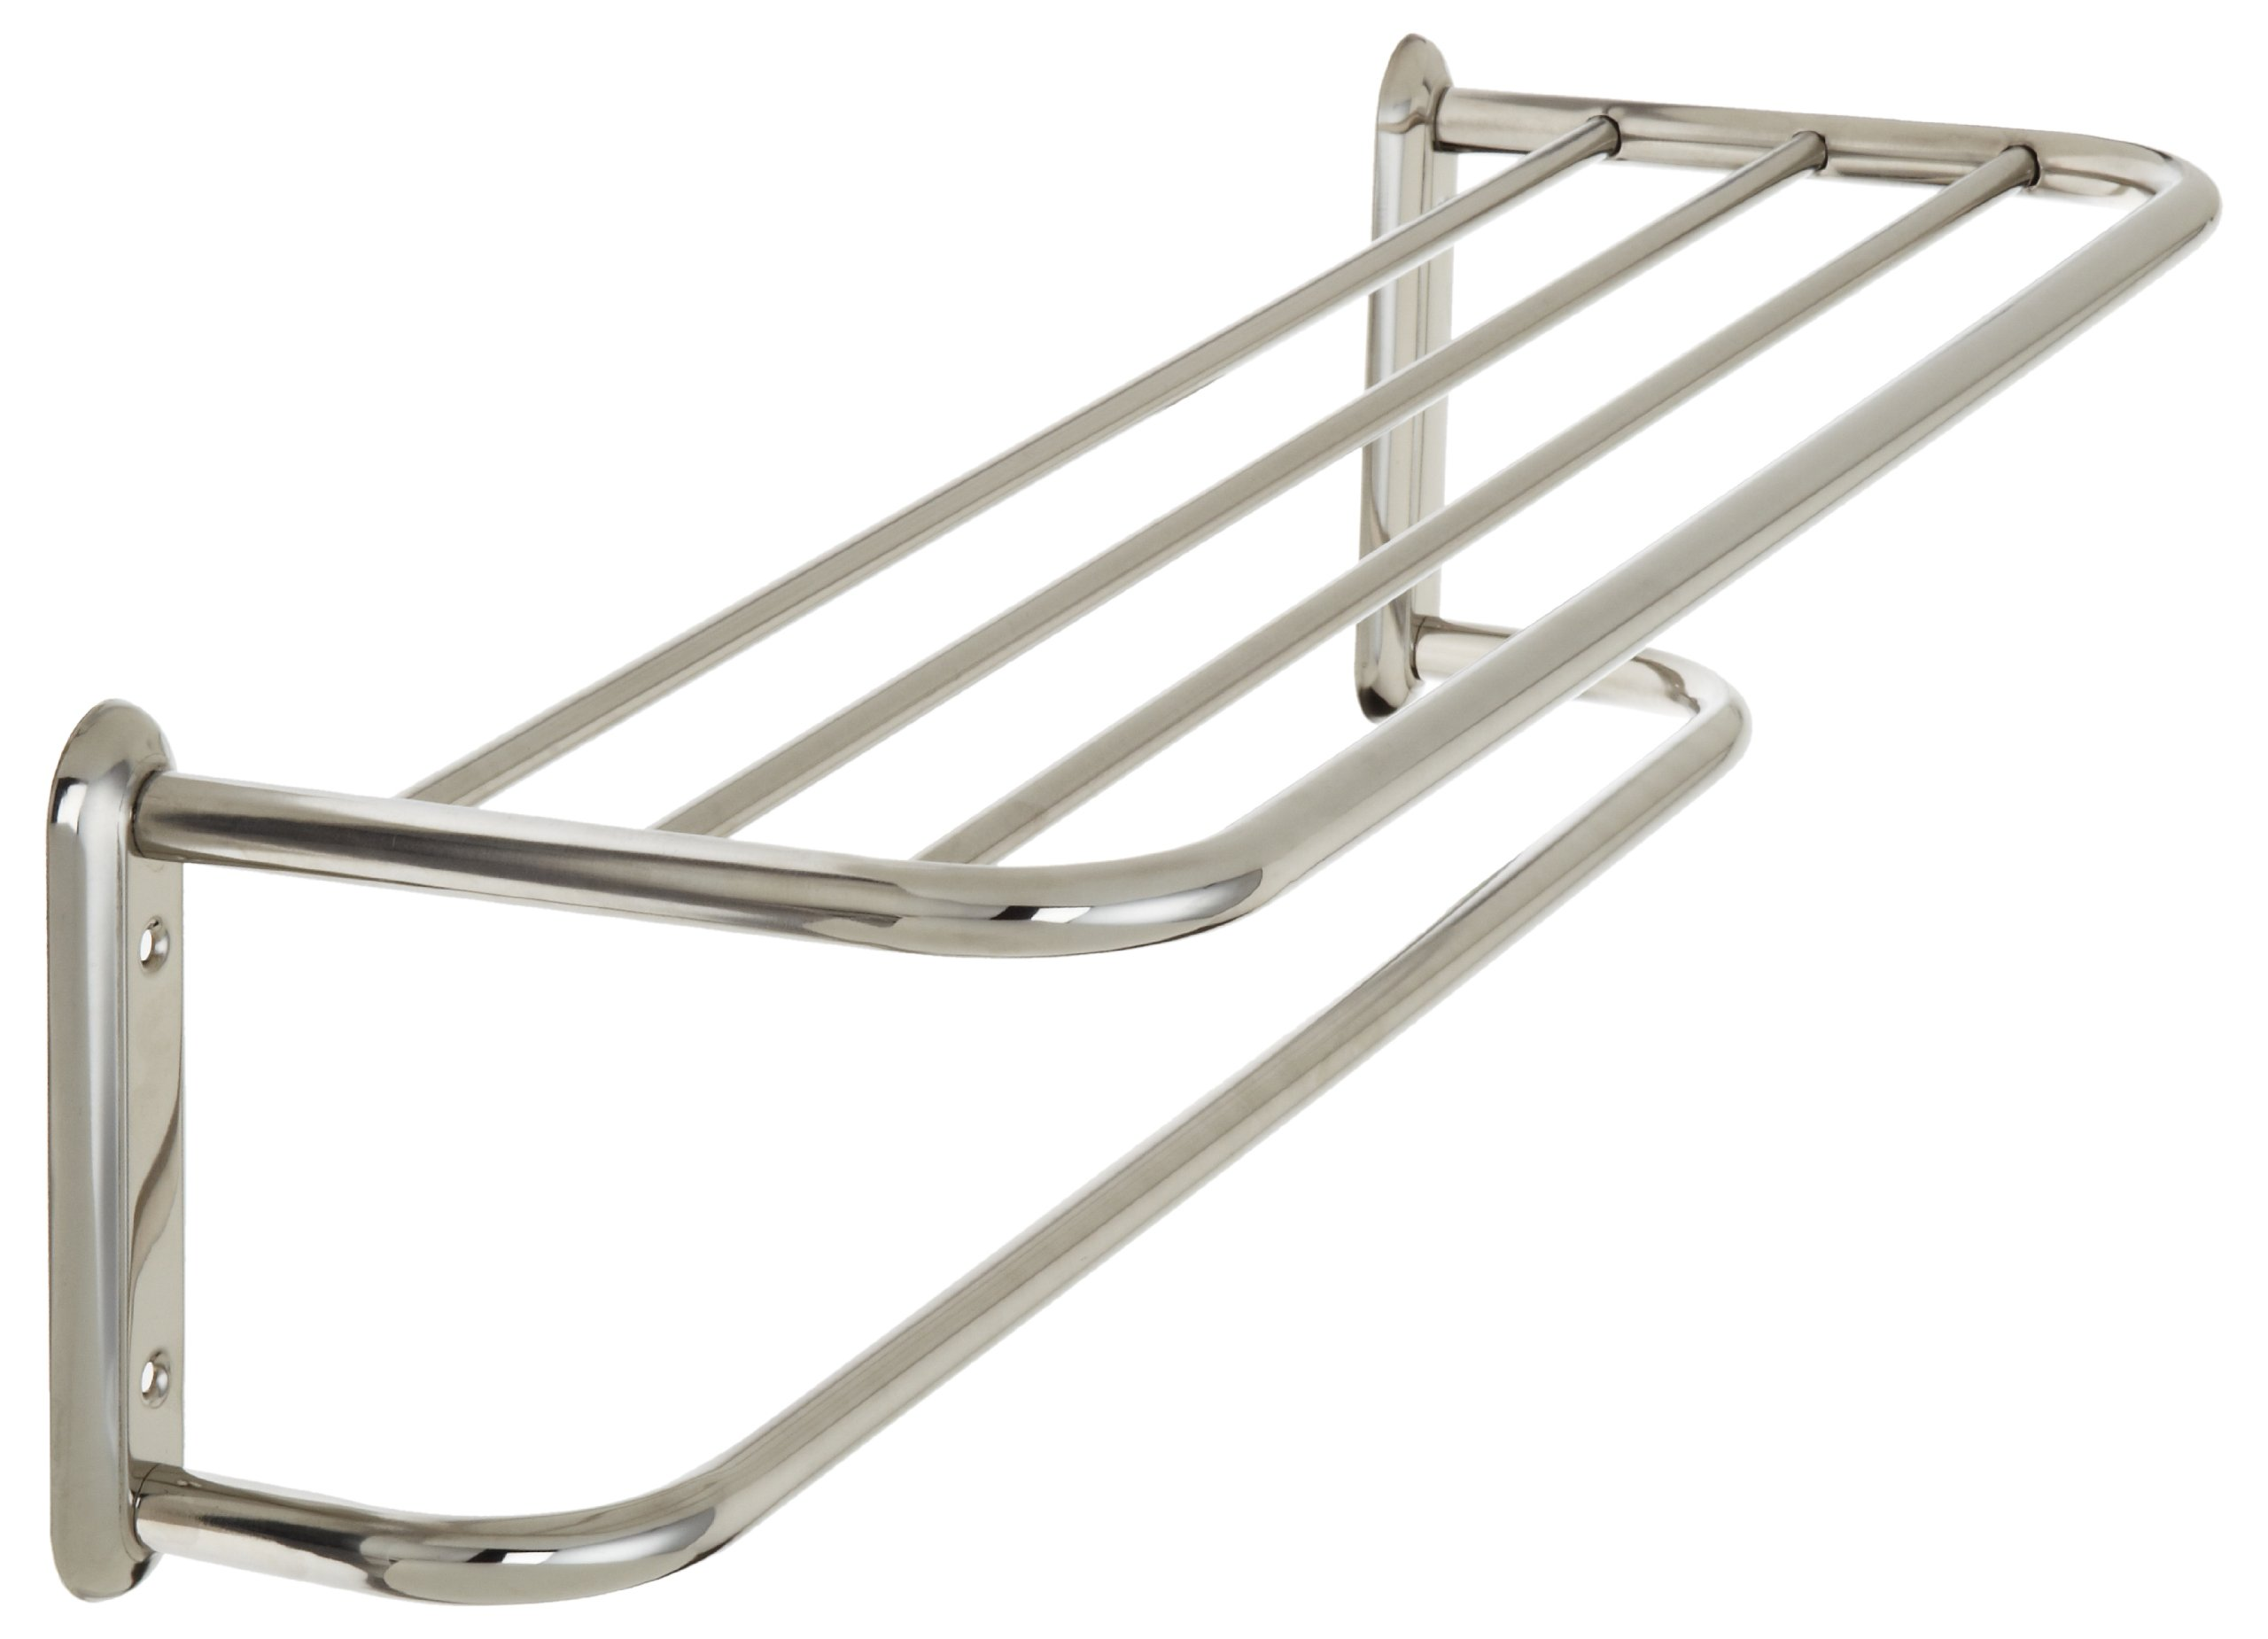 Taymor Hotel 24-Inch Upgraded Stainless Steel Towel Shelf with Single bar